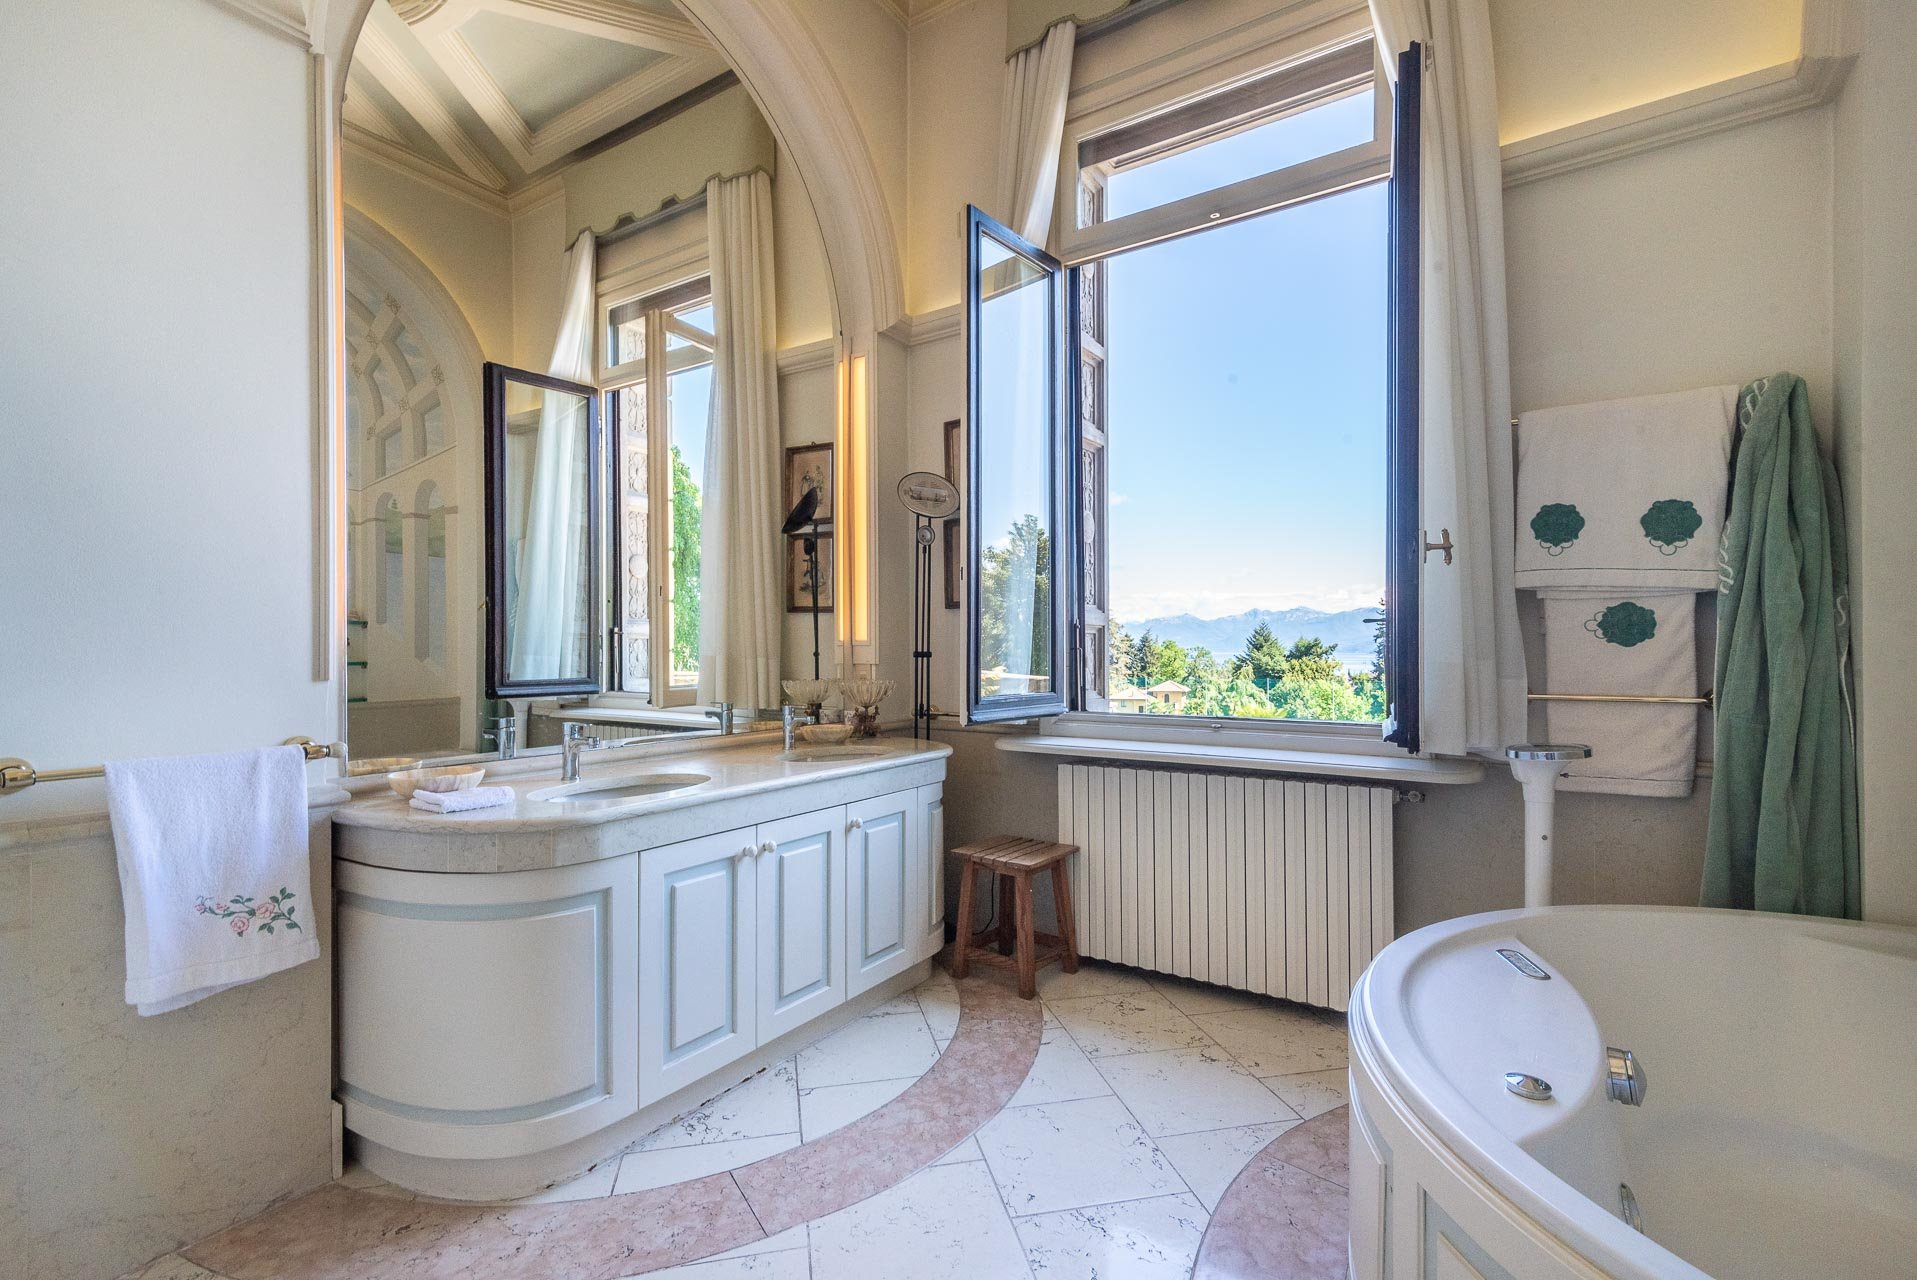 Luxurious apartment for sale in a villa in Stresa - bathroom